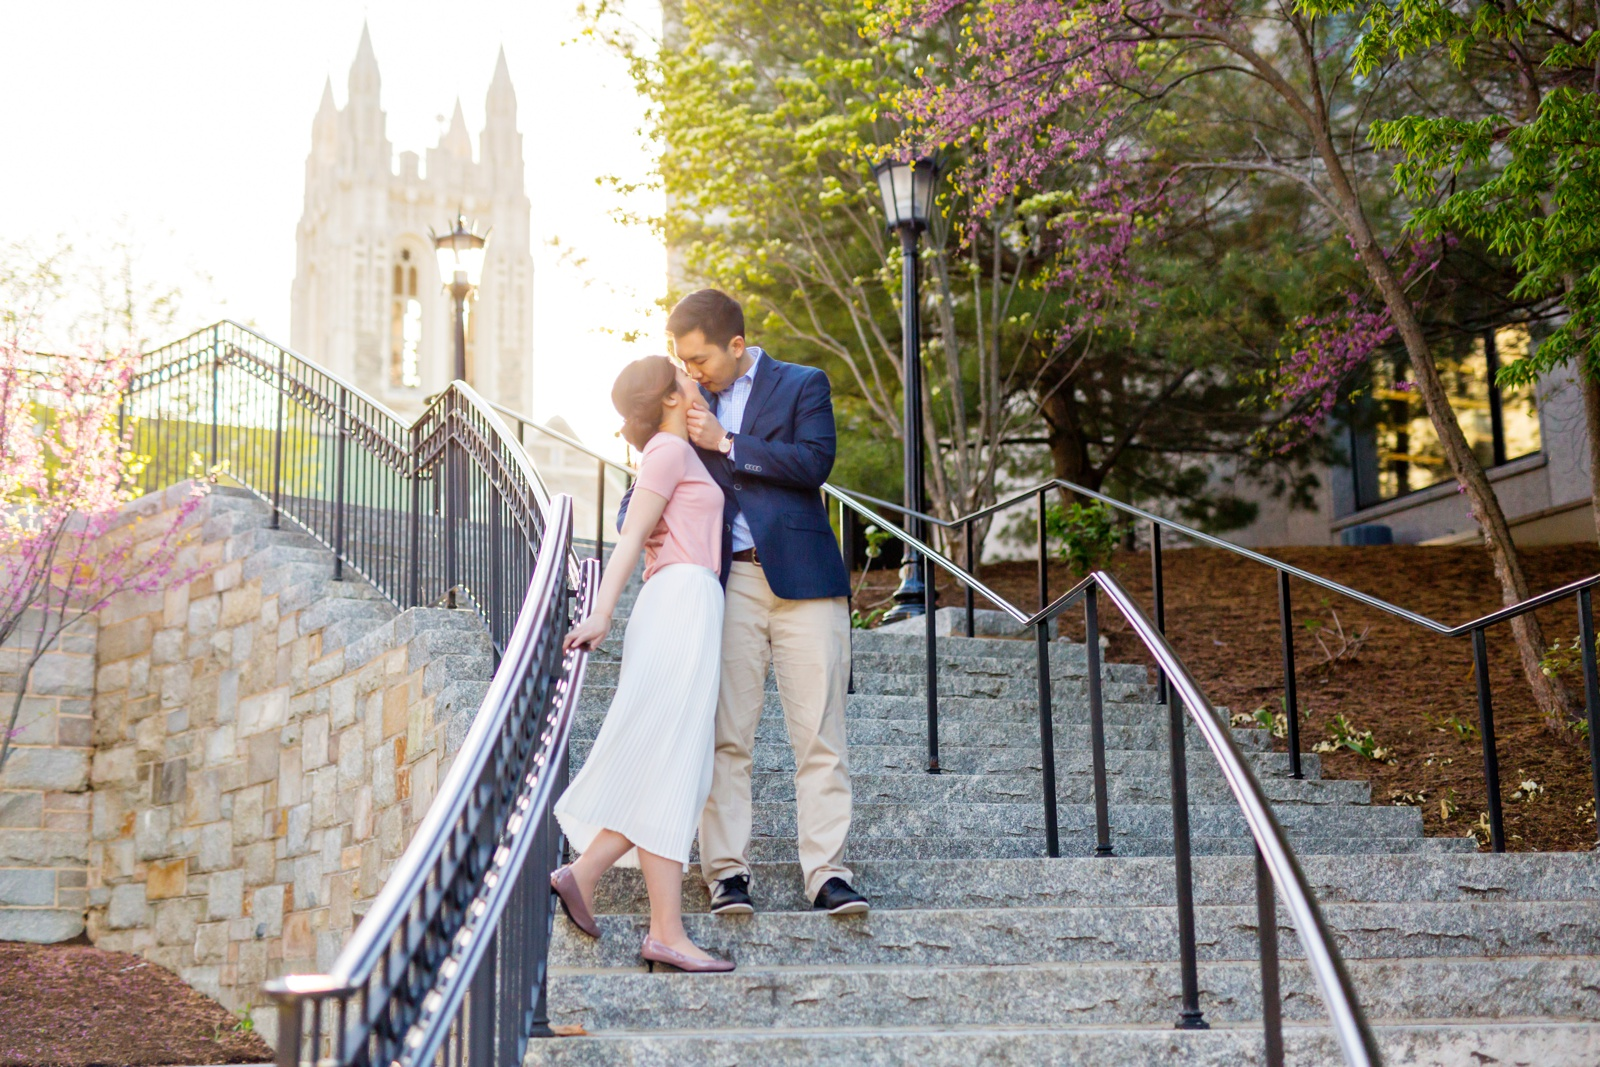 Engagement photo on the Higgins Stairs, also known as the Million Dollar Stairs.